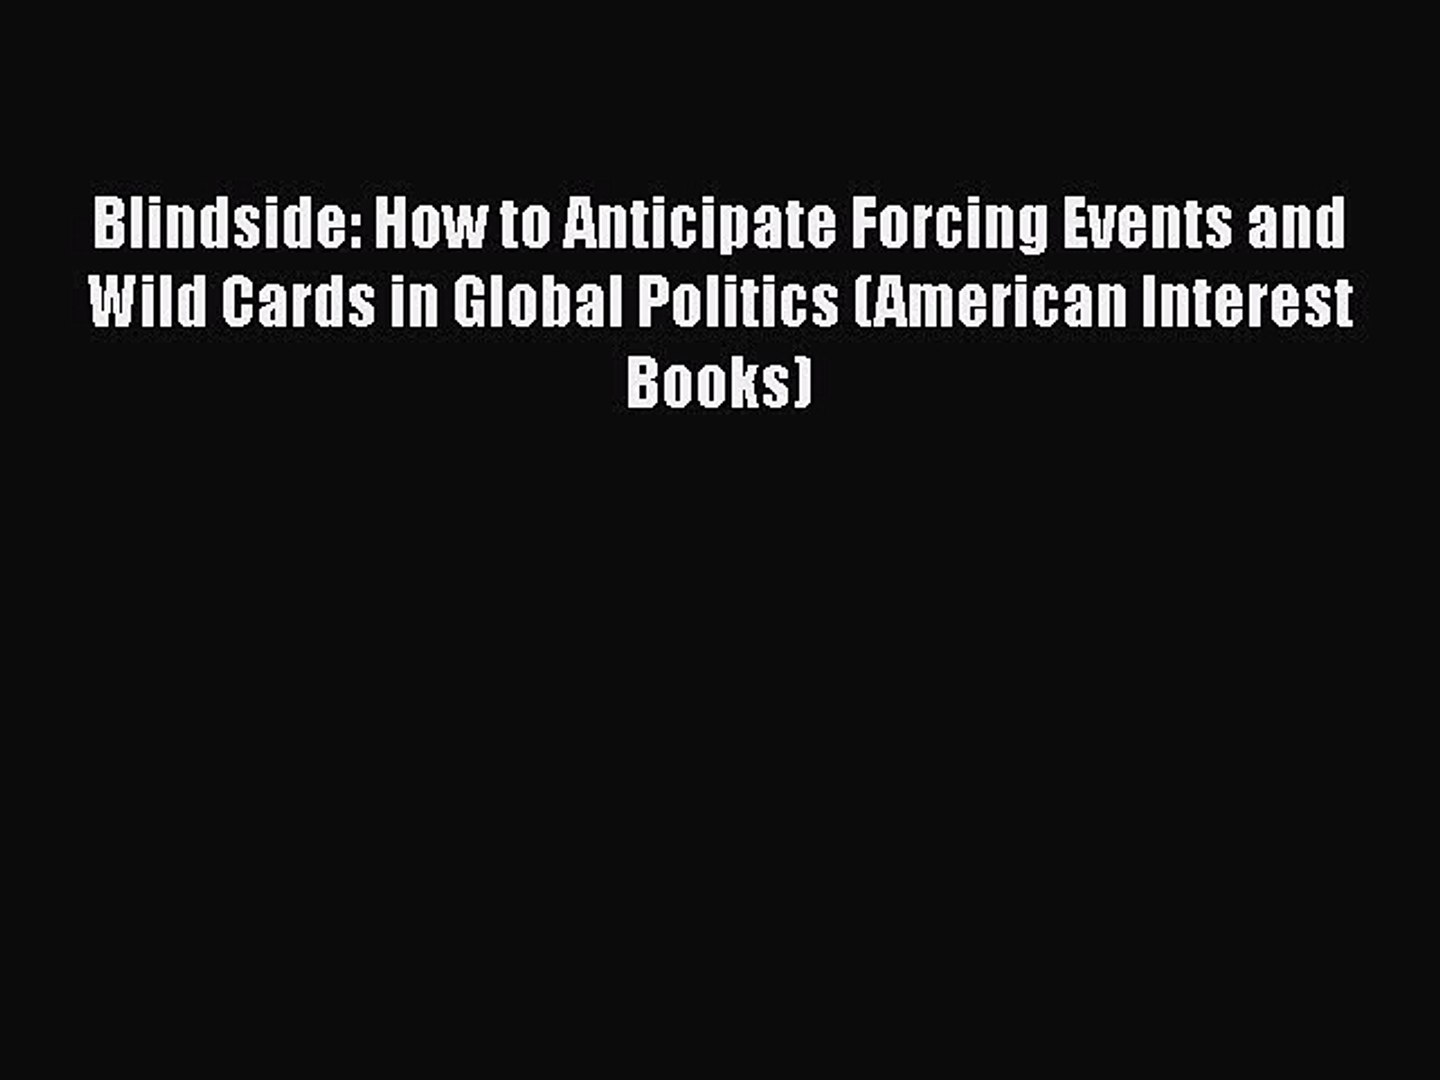 Read Book Blindside: How to Anticipate Forcing Events and Wild Cards in Global Politics (American